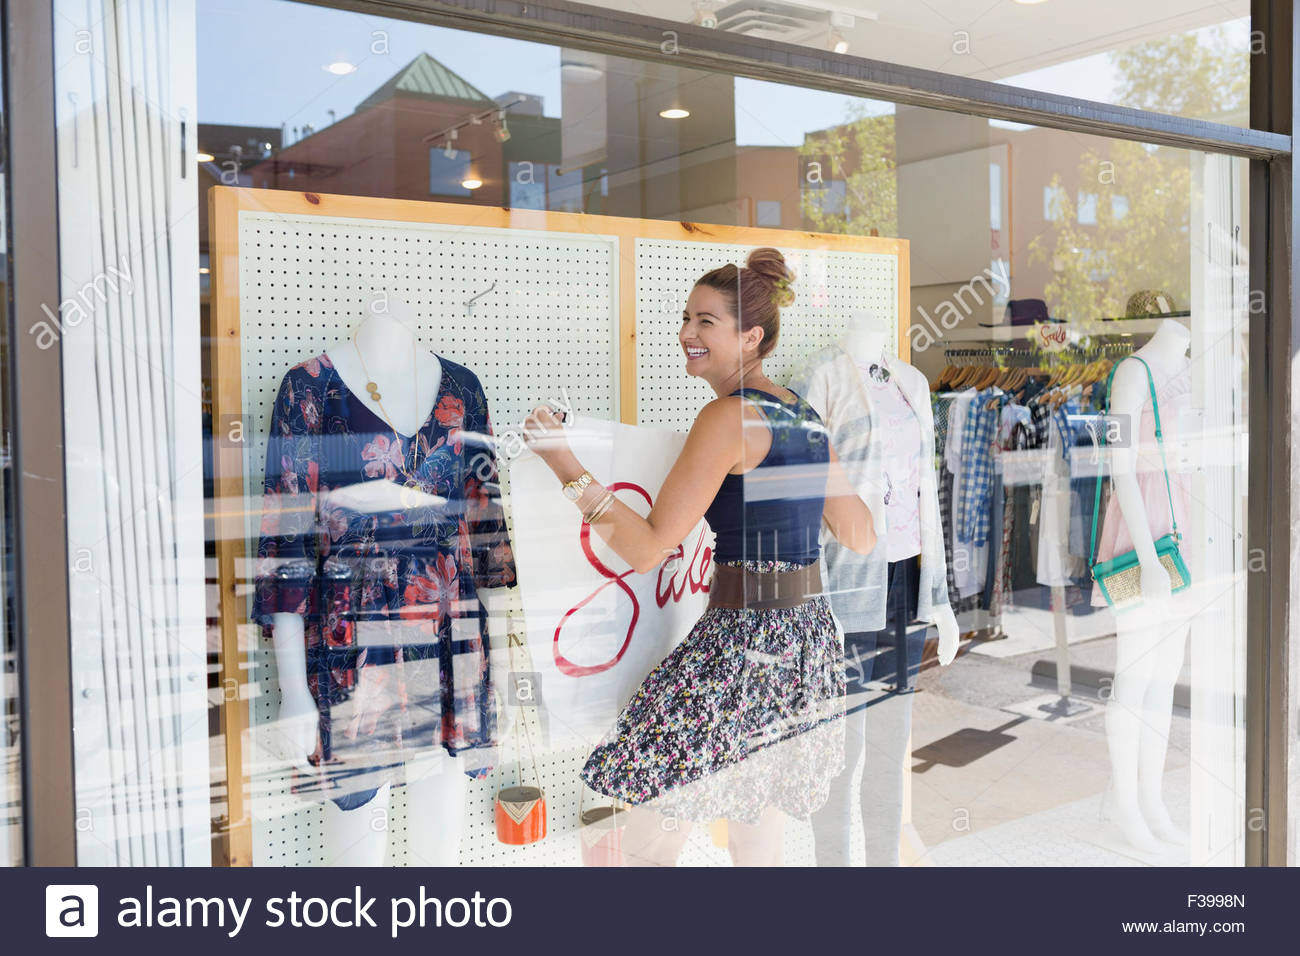 Smiling worker hanging sale sign clothing shop window - Stock Image